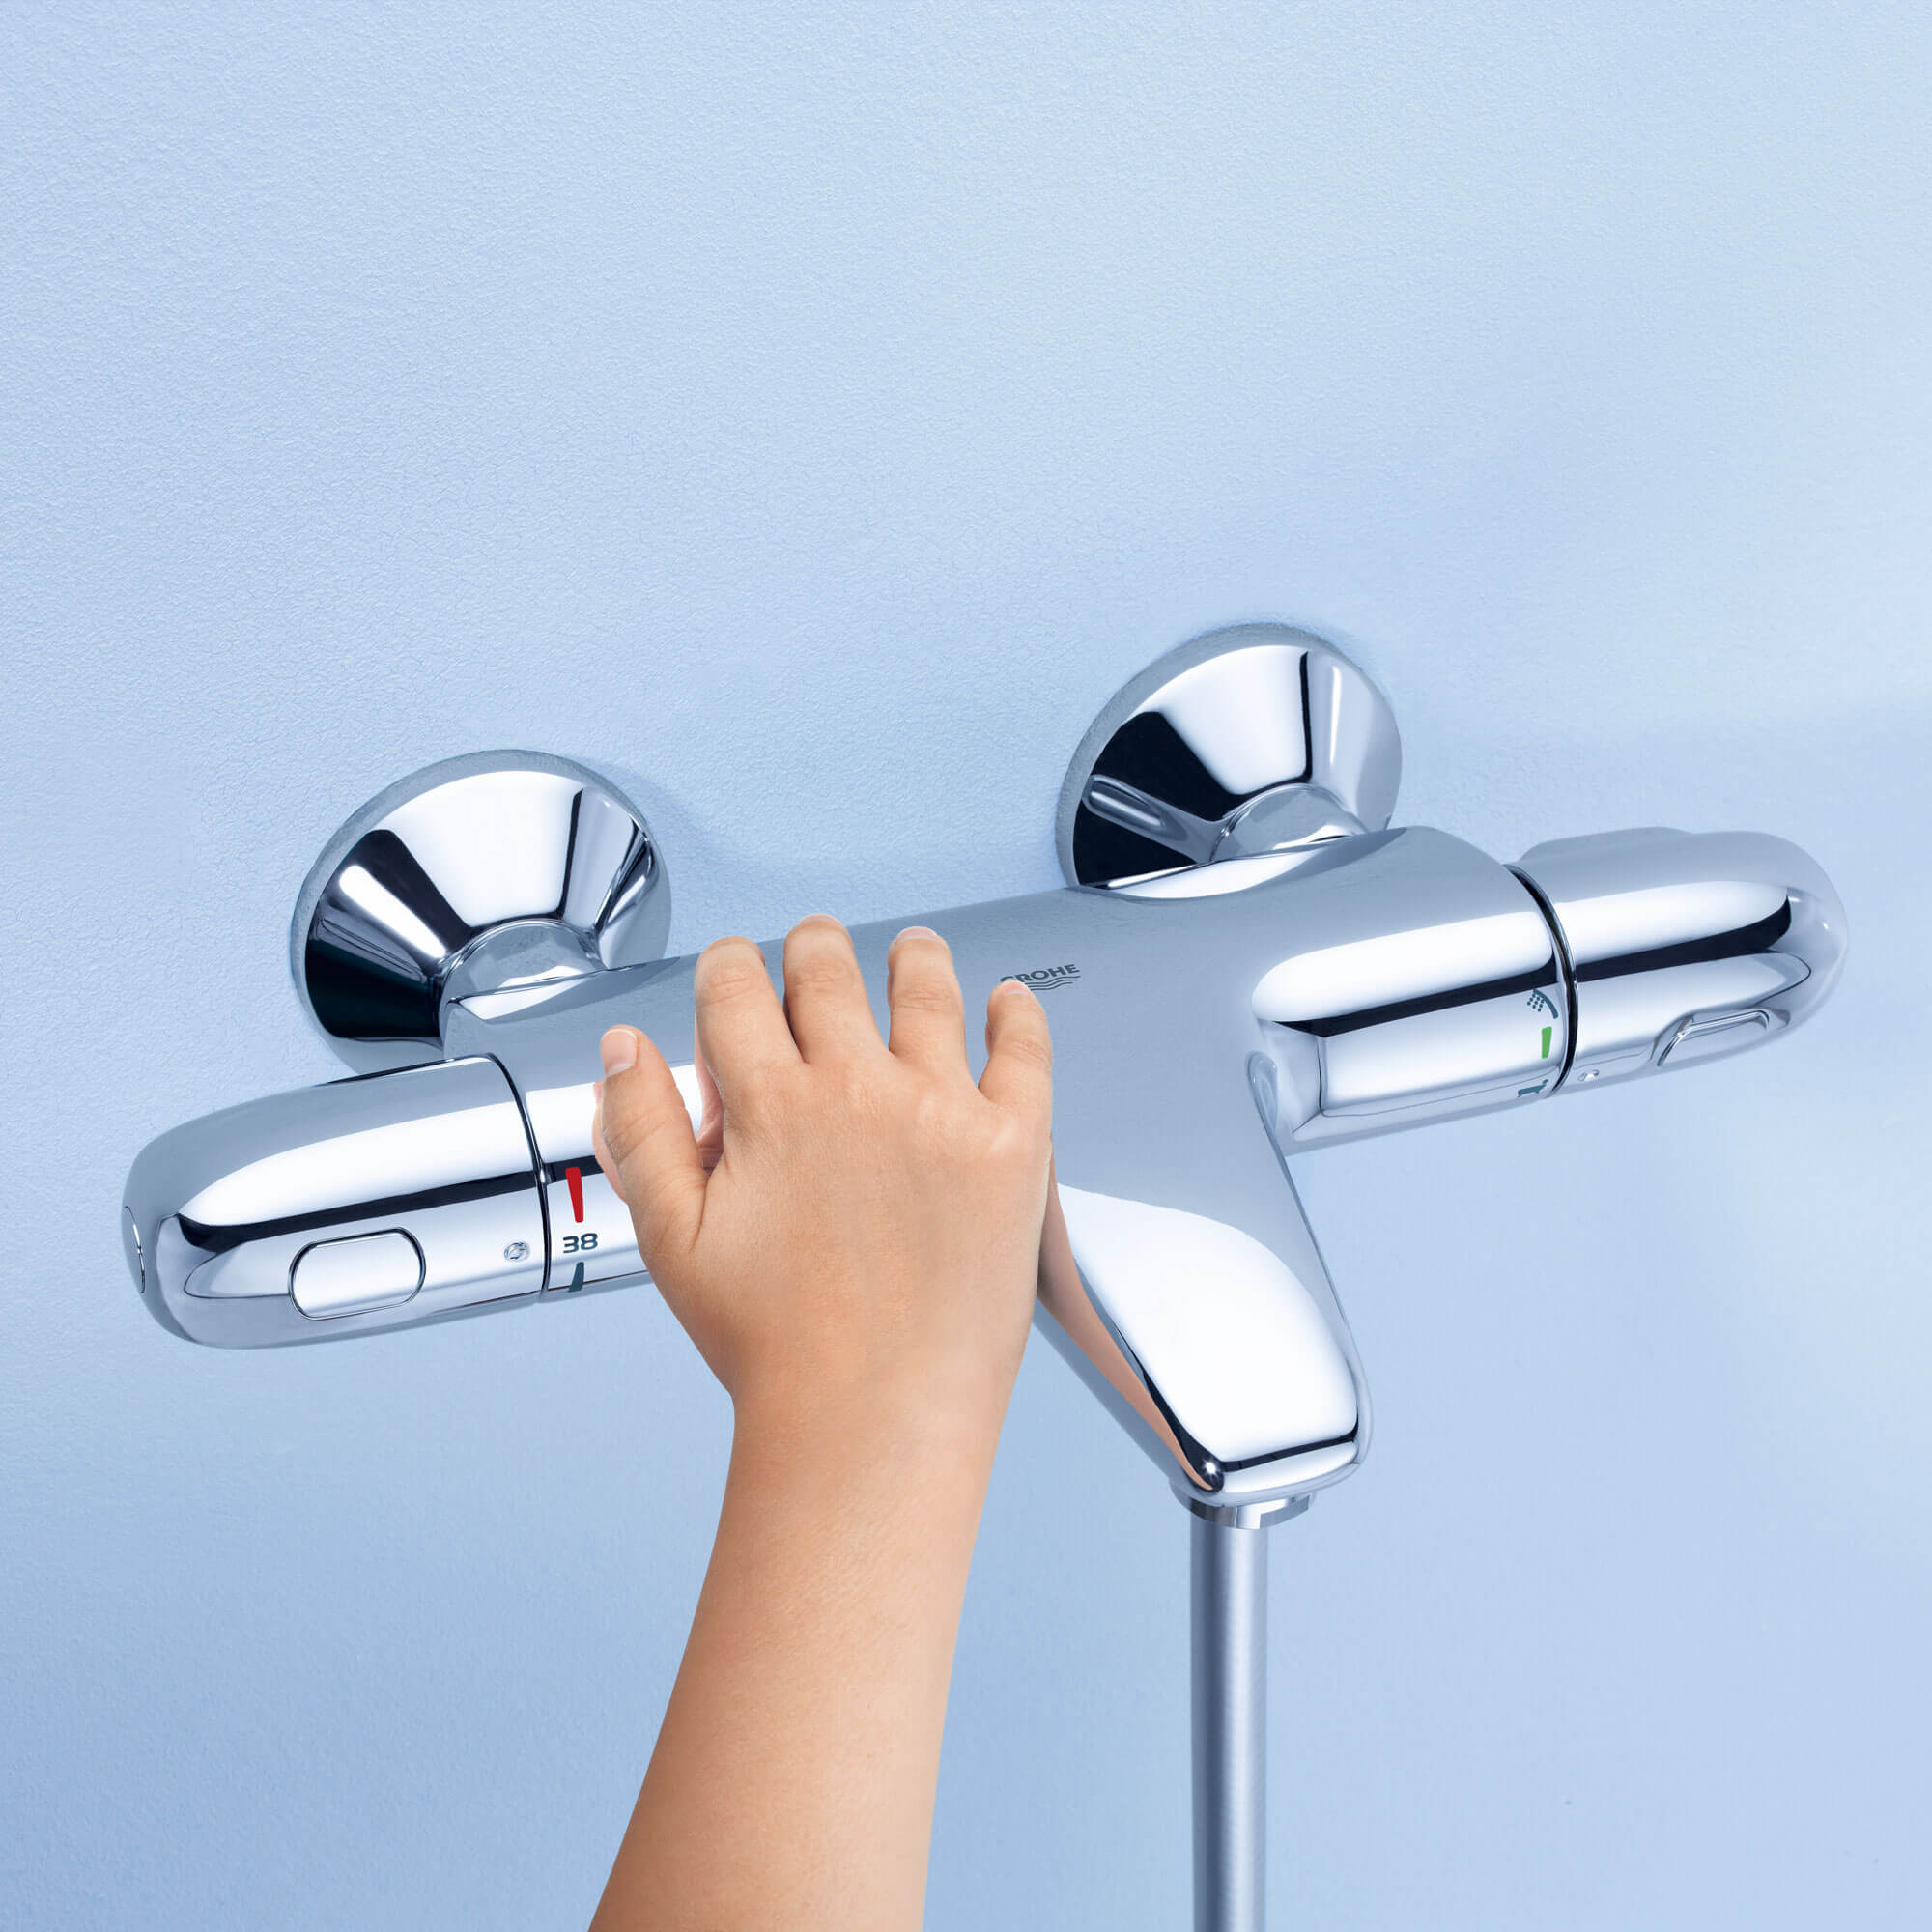 A child's hand reaching for a thermostatic knob.